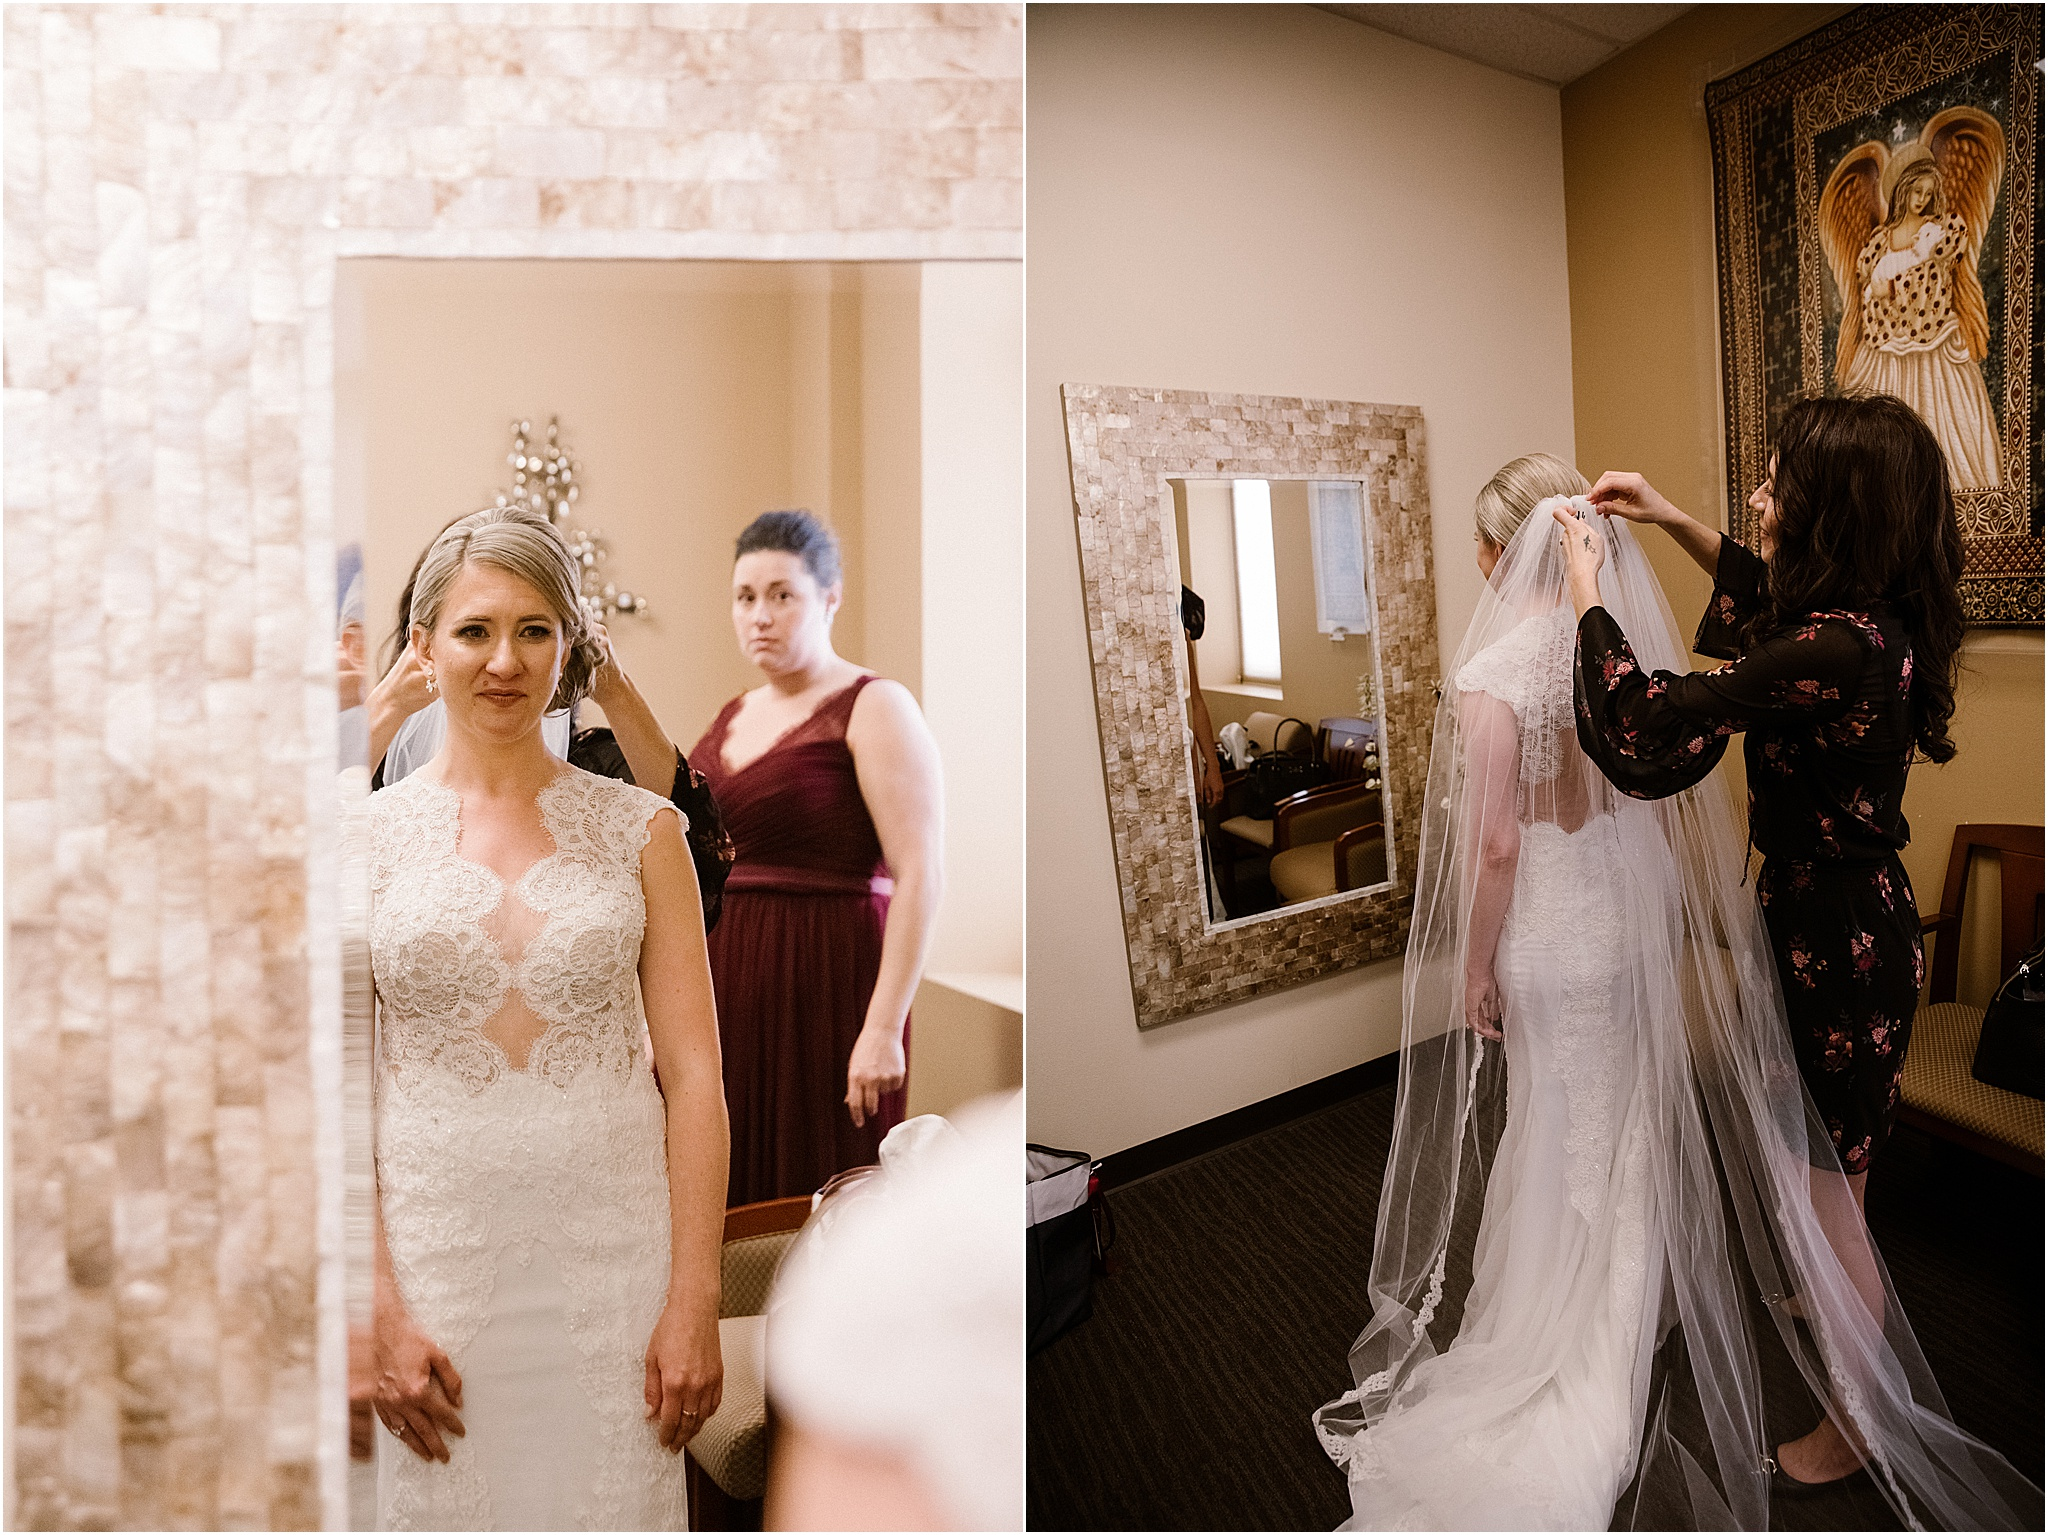 JENNA_JEROME_BLUE ROSE PHOTOGRAPHY_ABQ WEDDING_12